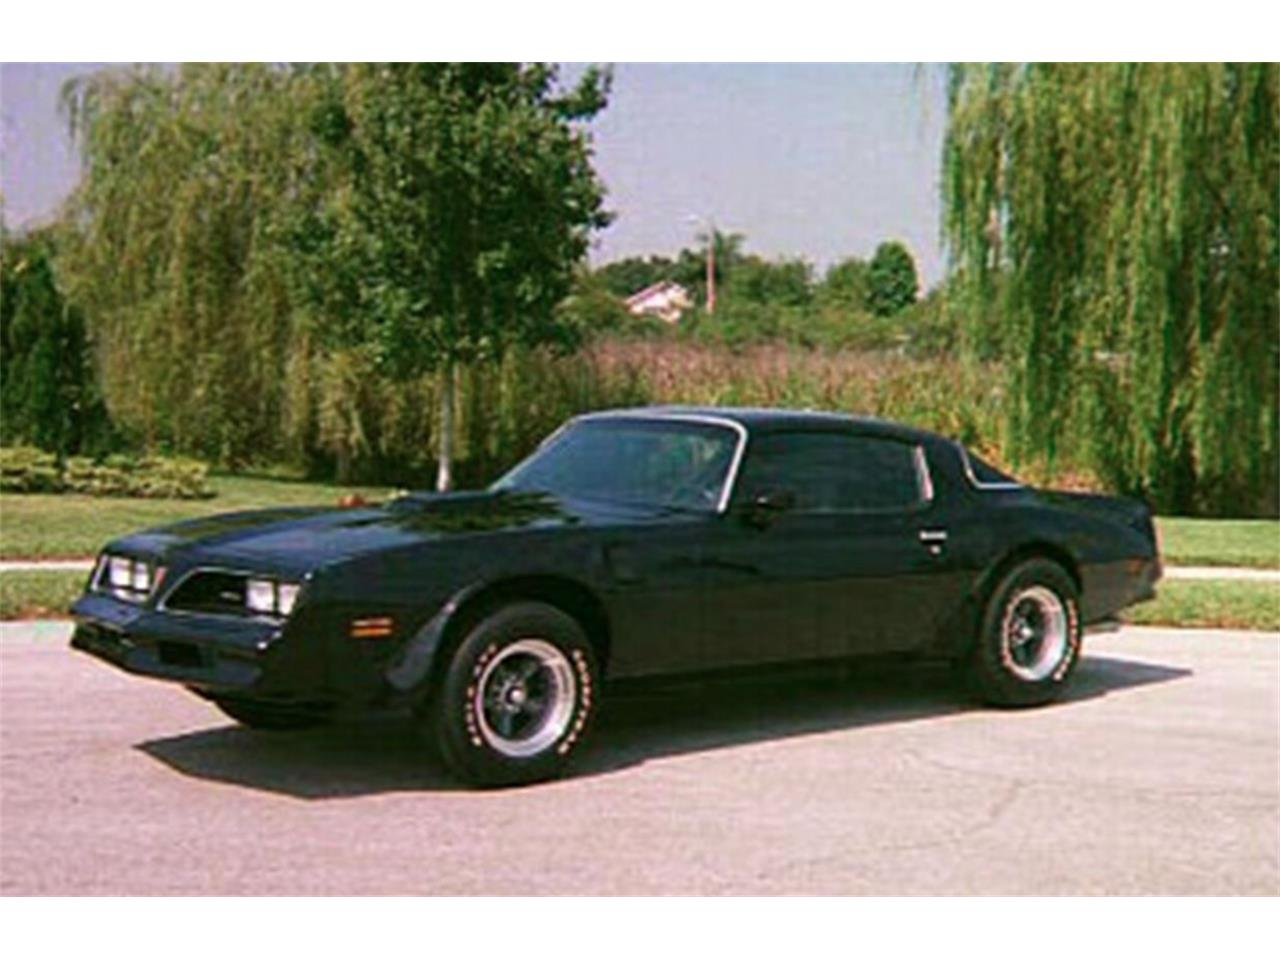 1977 Pontiac Firebird Trans Am (CC-1101213) for sale in Valrico, Florida